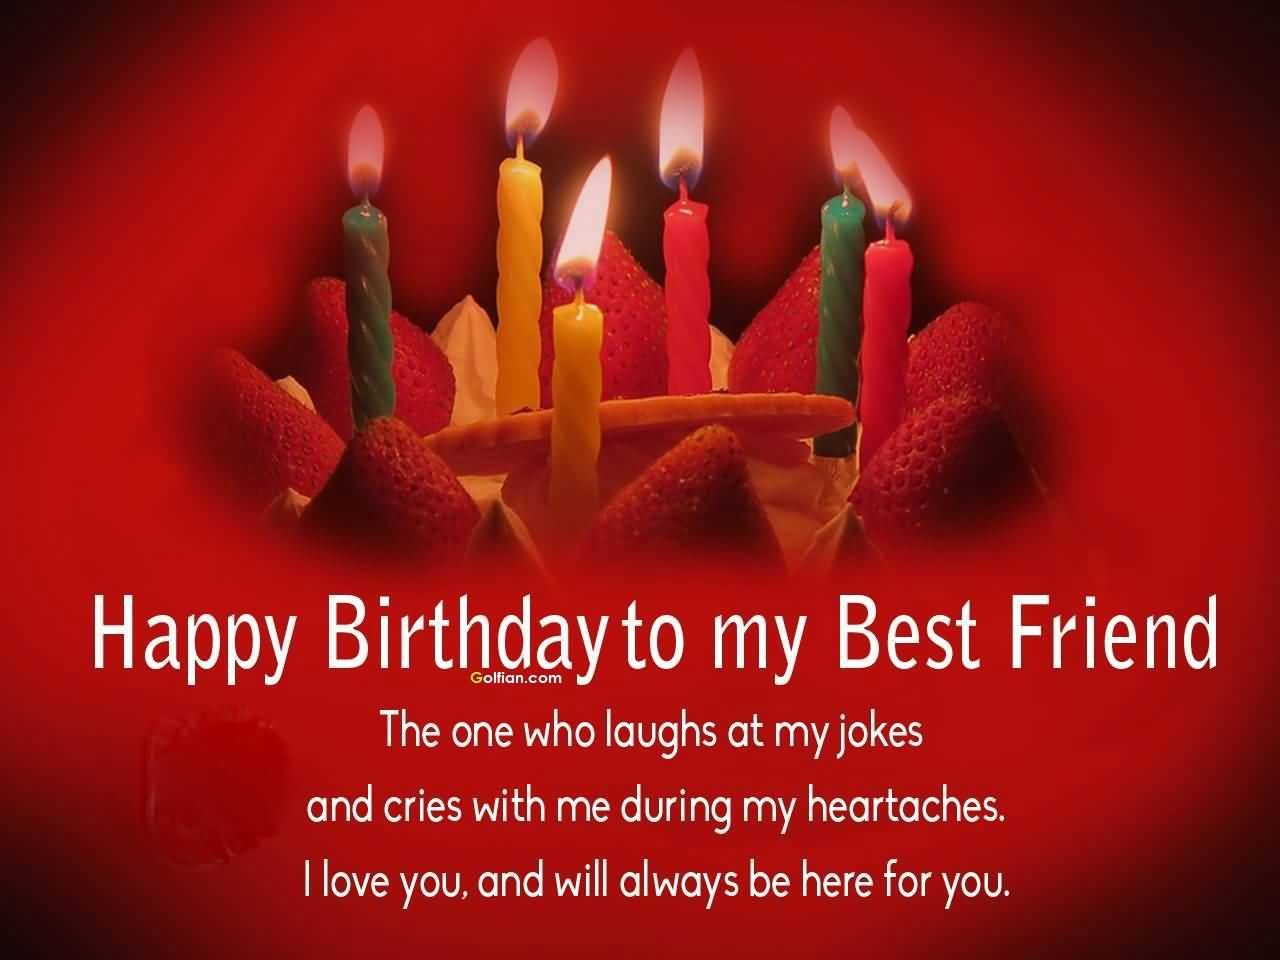 Happy Birthday To My Best Friend Pictures Photos And Images For Facebook Tumblr Pinterest And Twitter